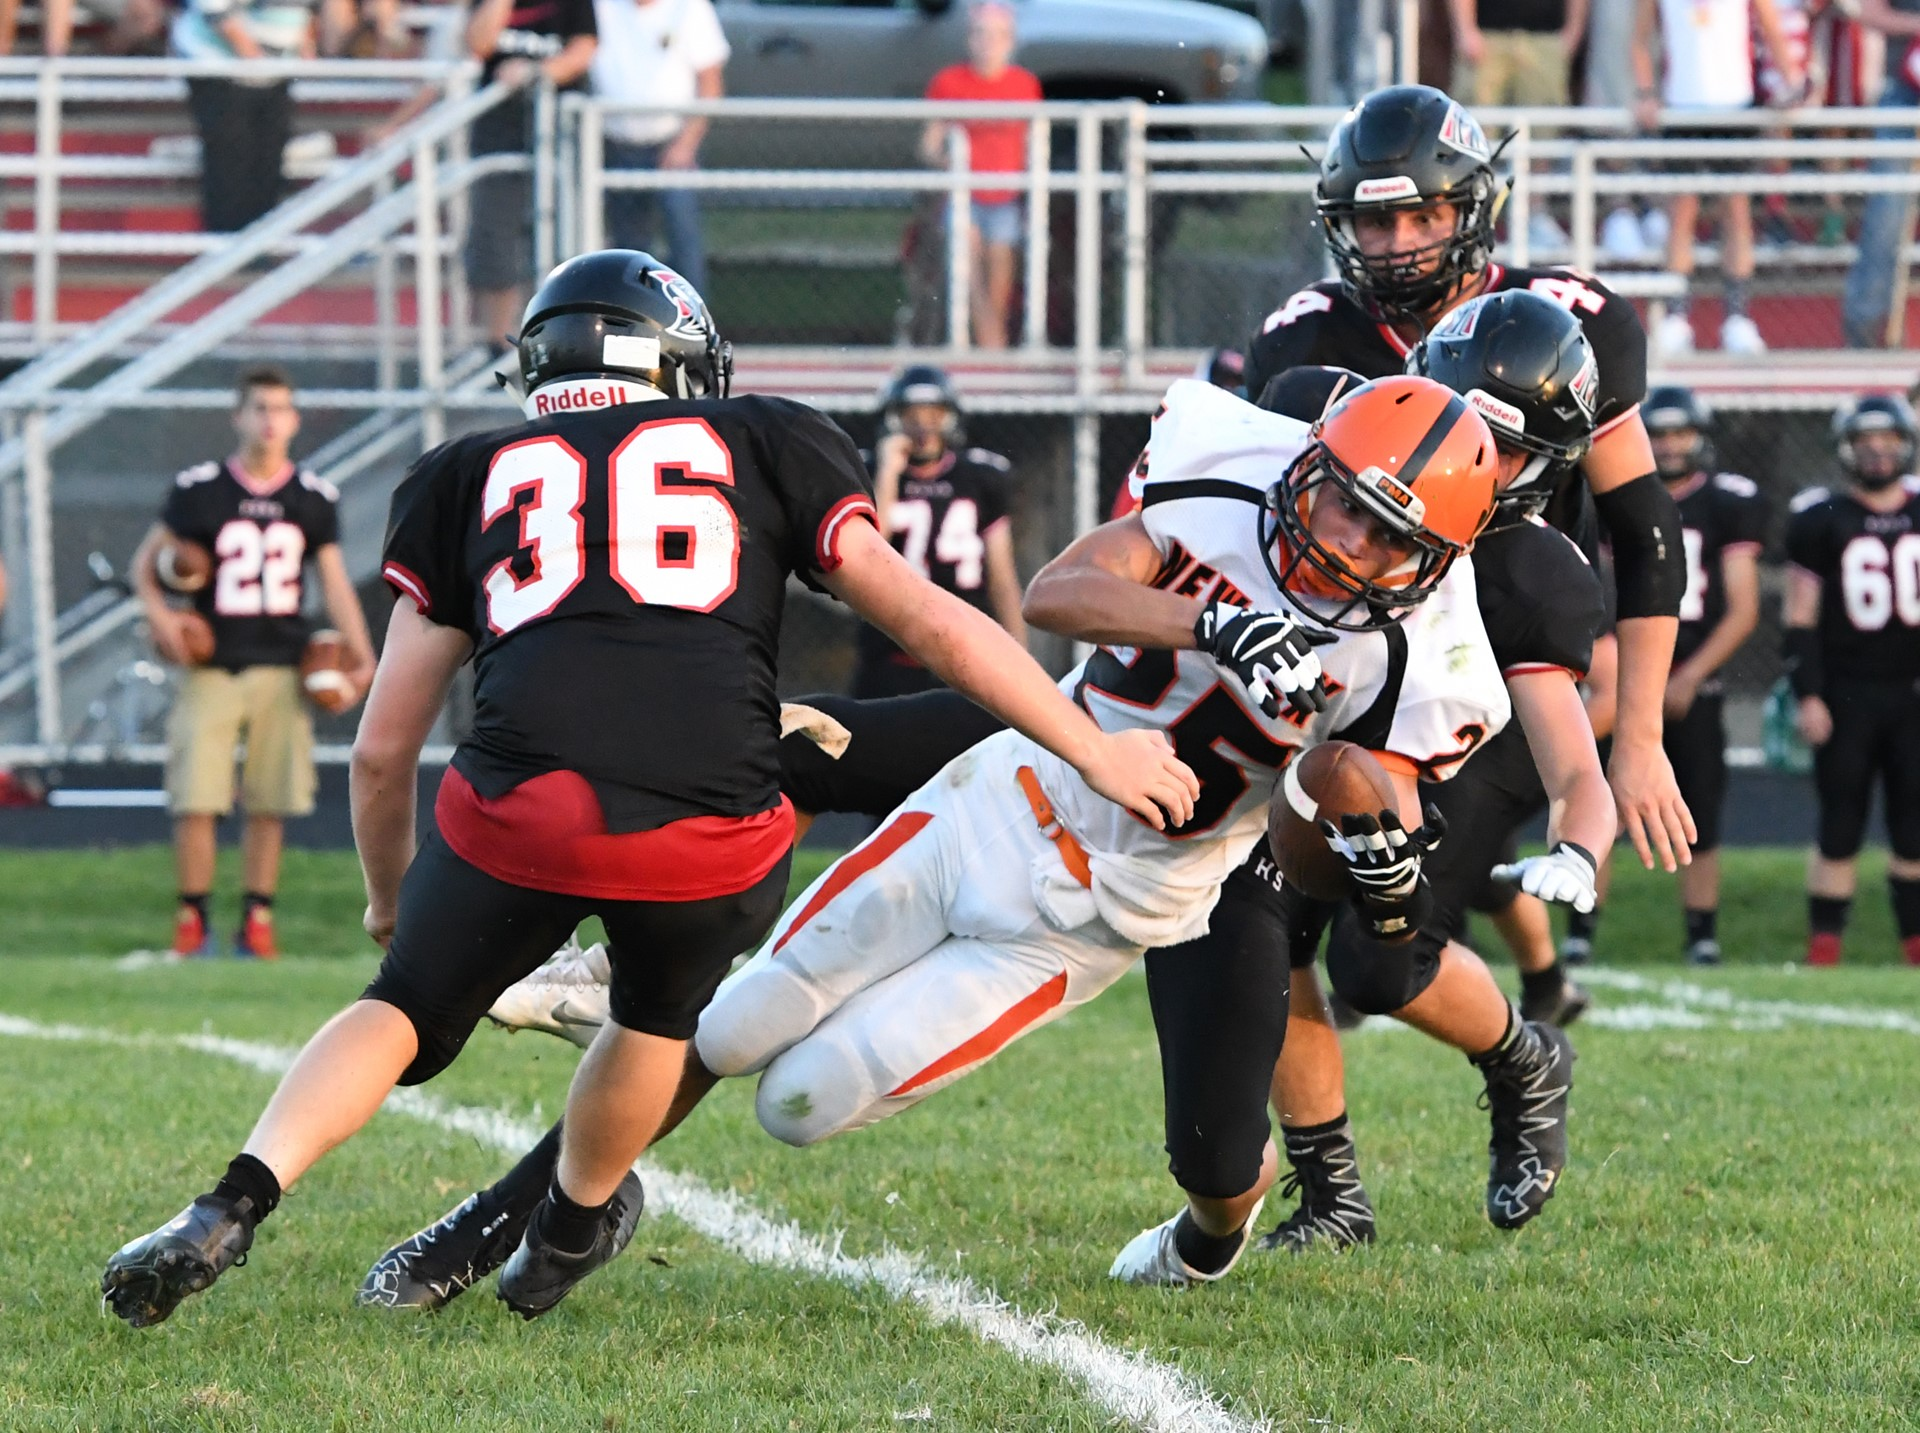 KAM BOWEN VS FAIRFIELD UNION